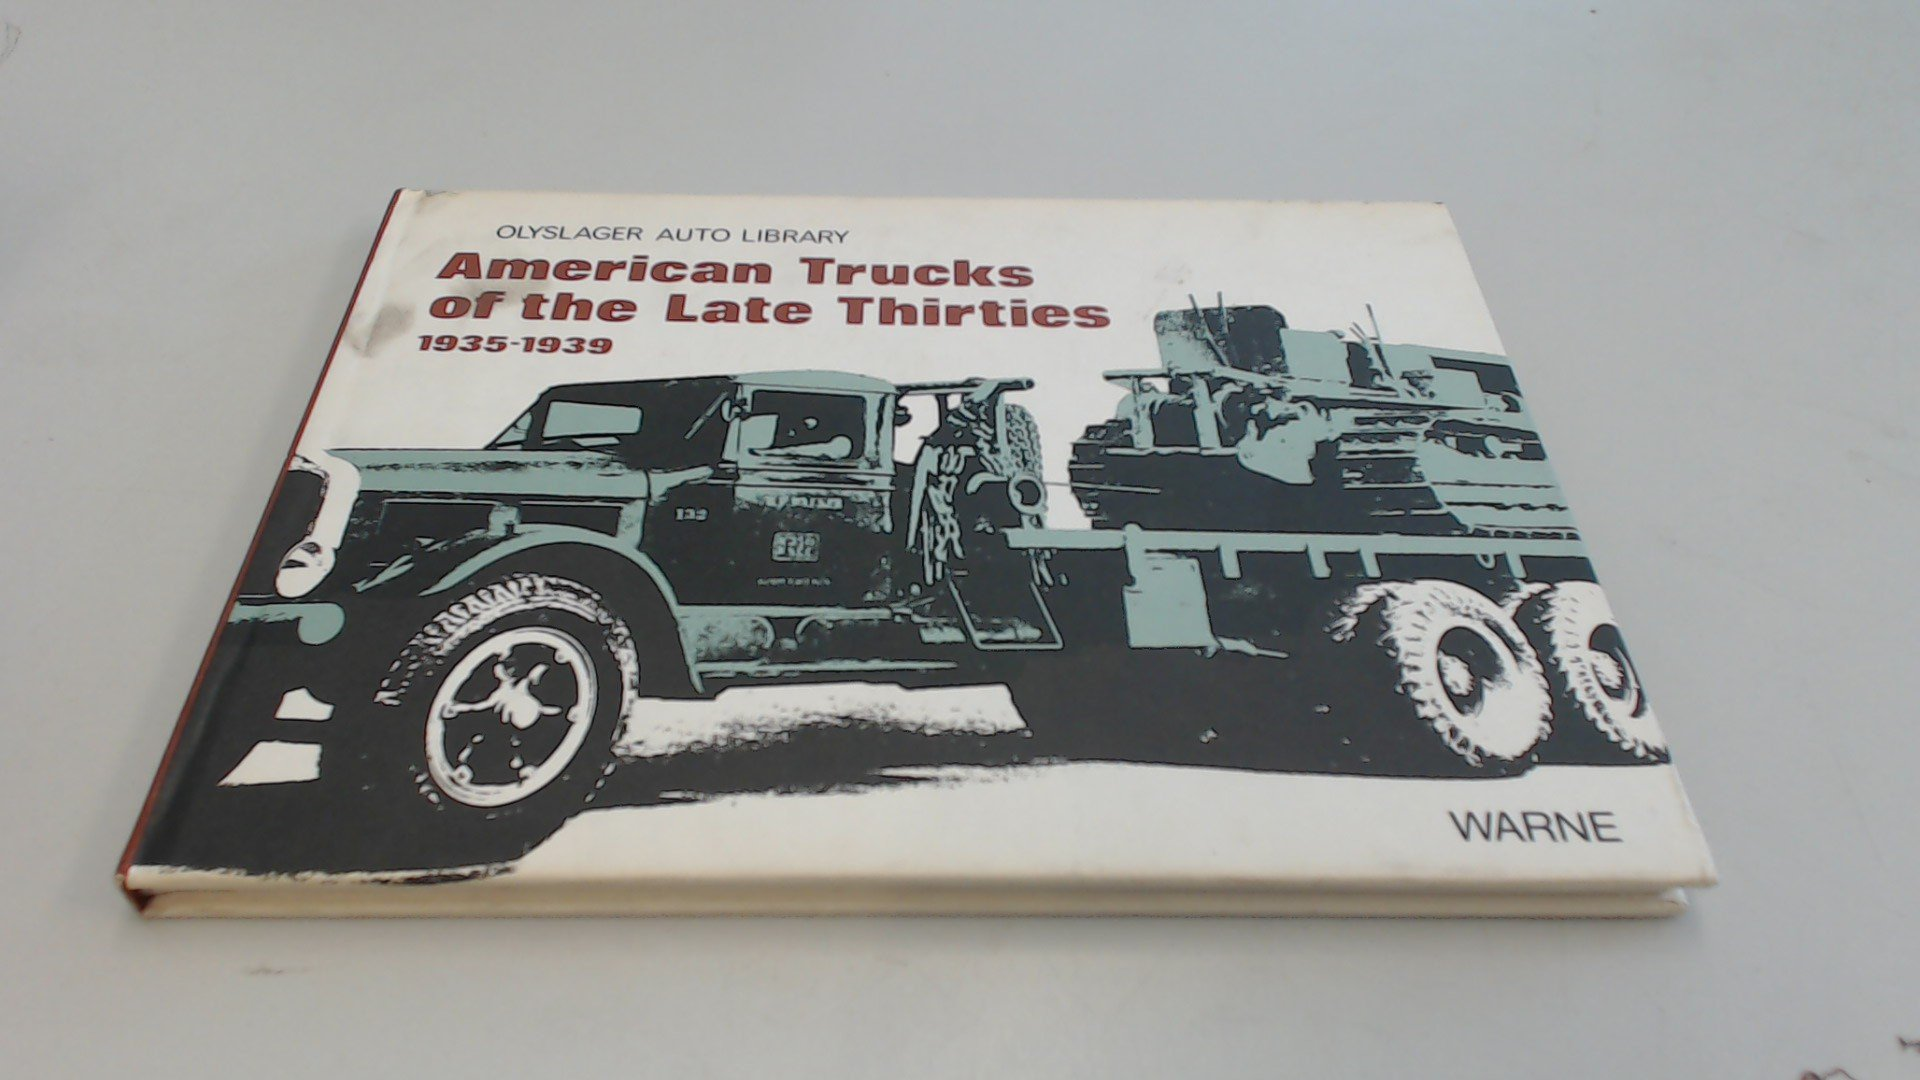 American Trucks of the Late Thirties 1935-1939 (Olyslager Auto Library) Hardcover – January 1, 1975 Olyslager Organization Bart H. Vanderveen Warne 0723218218